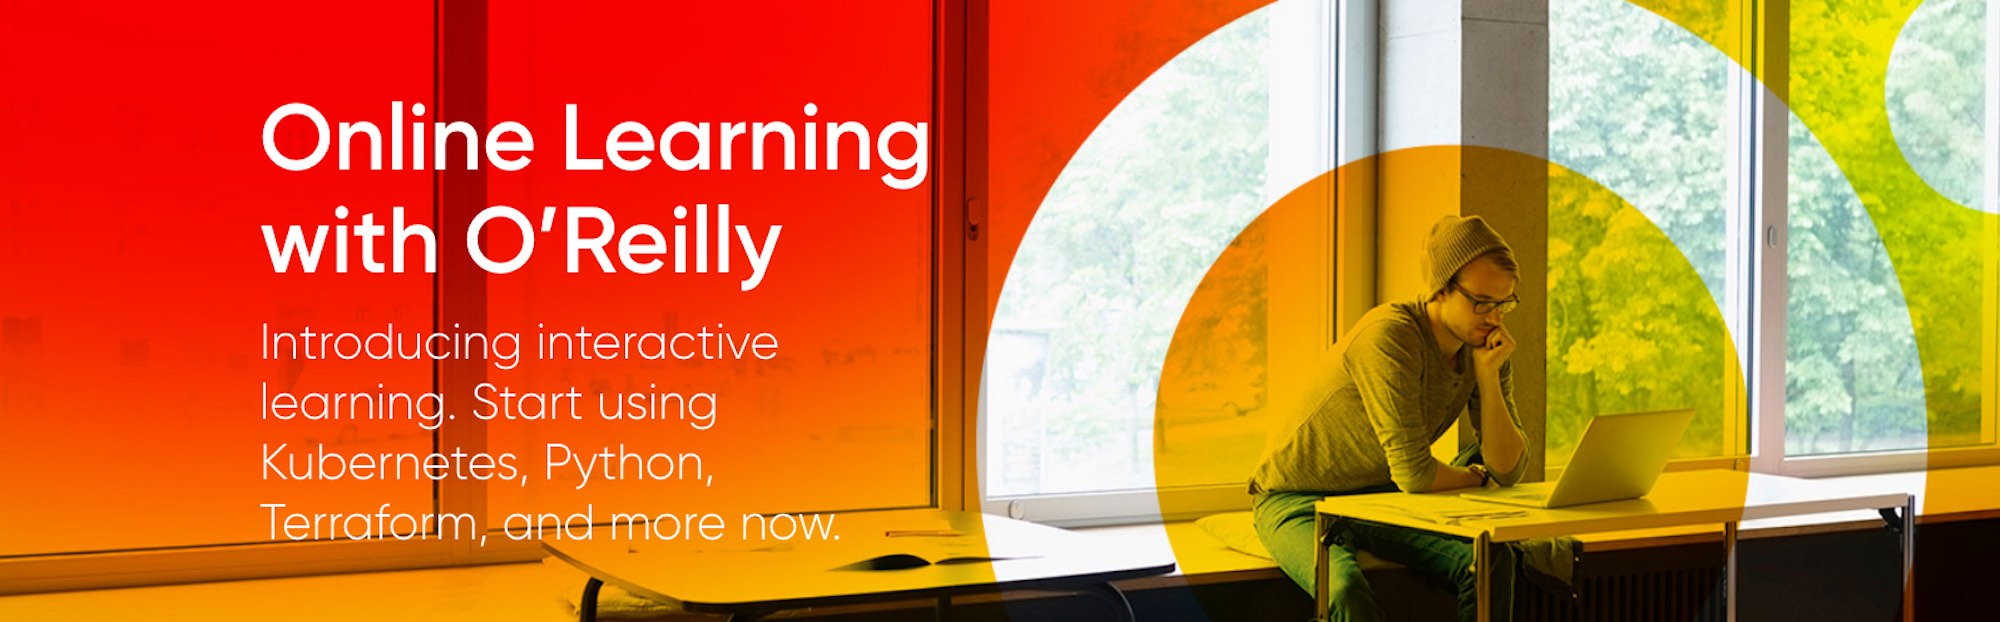 O'Reilly's Online Learning Platform